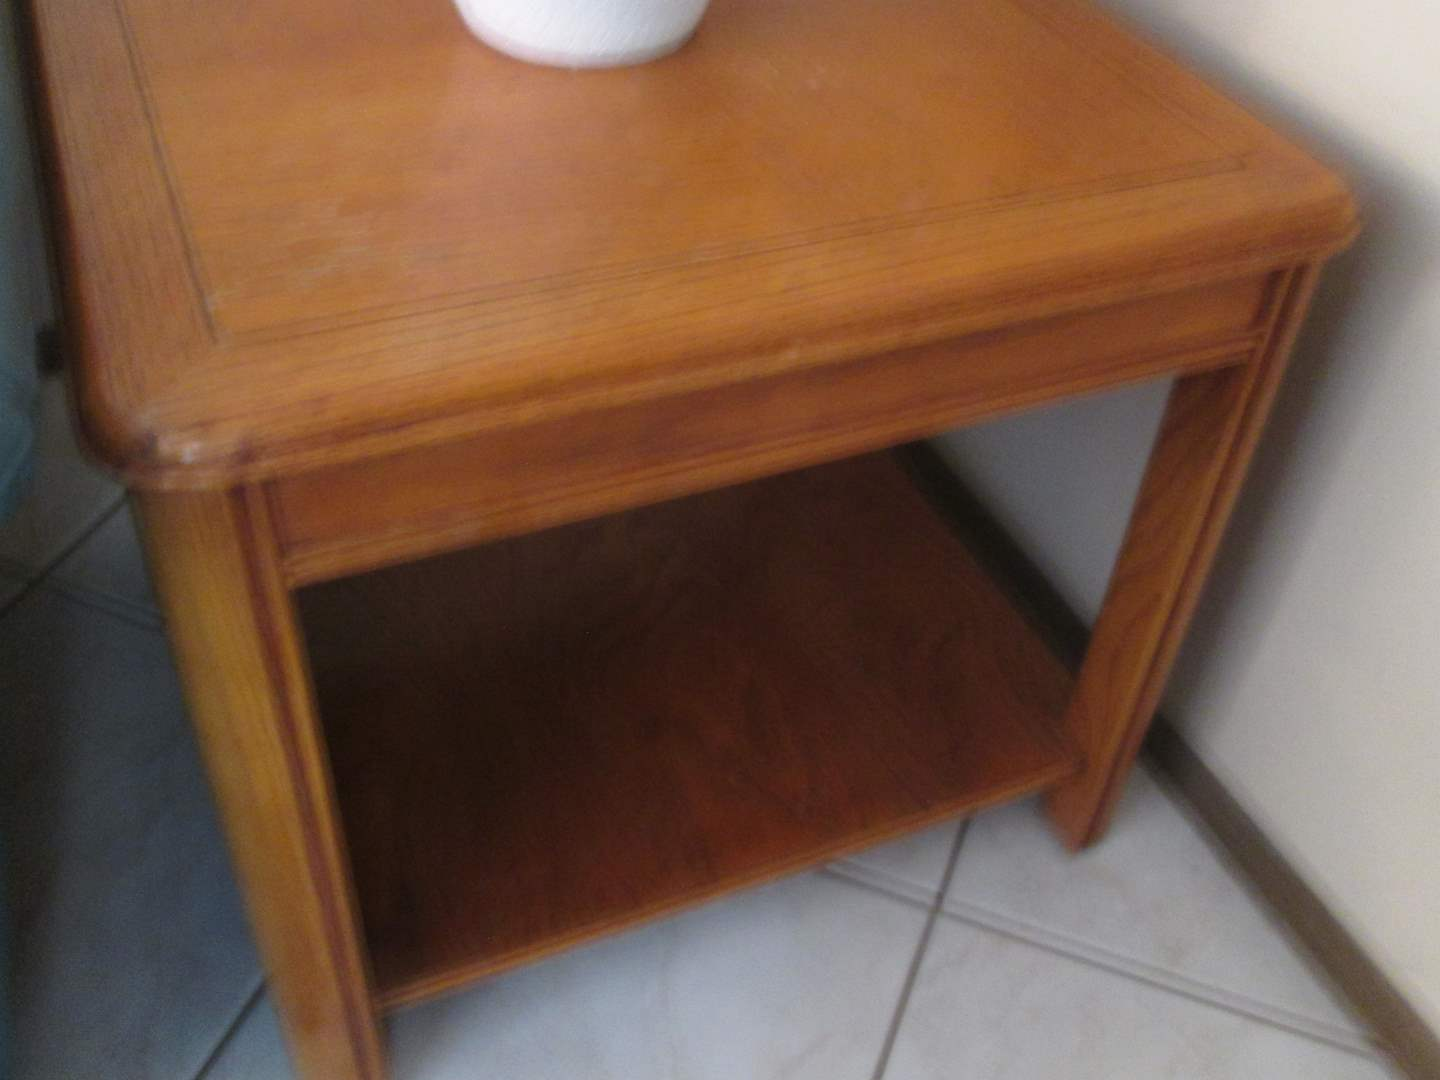 Lot # 238 - End Table with Shelf (main image)